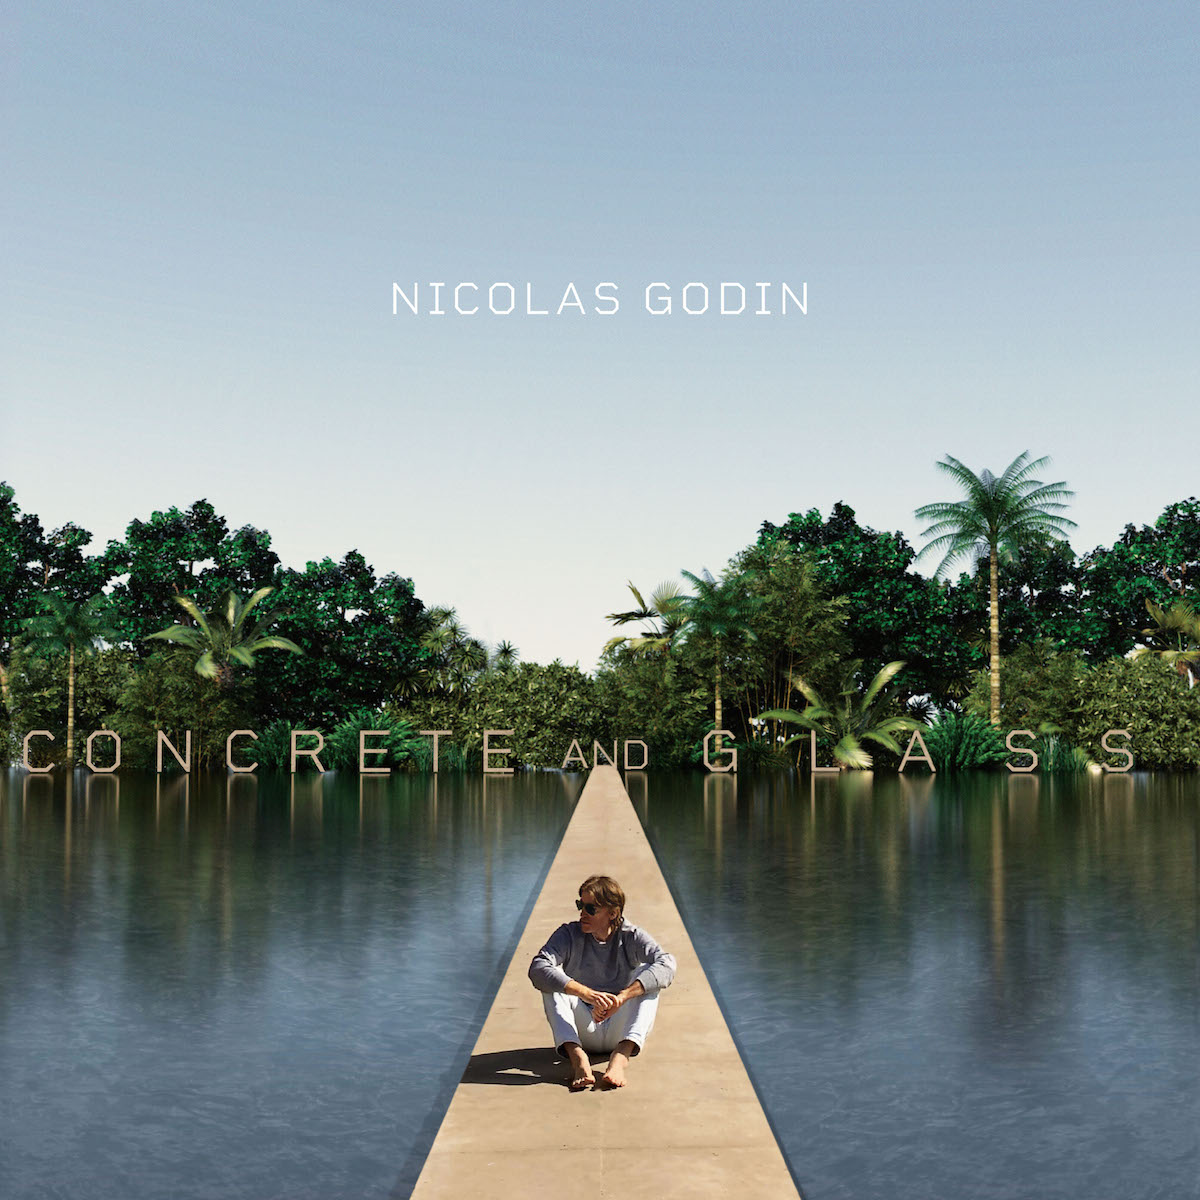 Concrete and Glass - Nicolas Godin